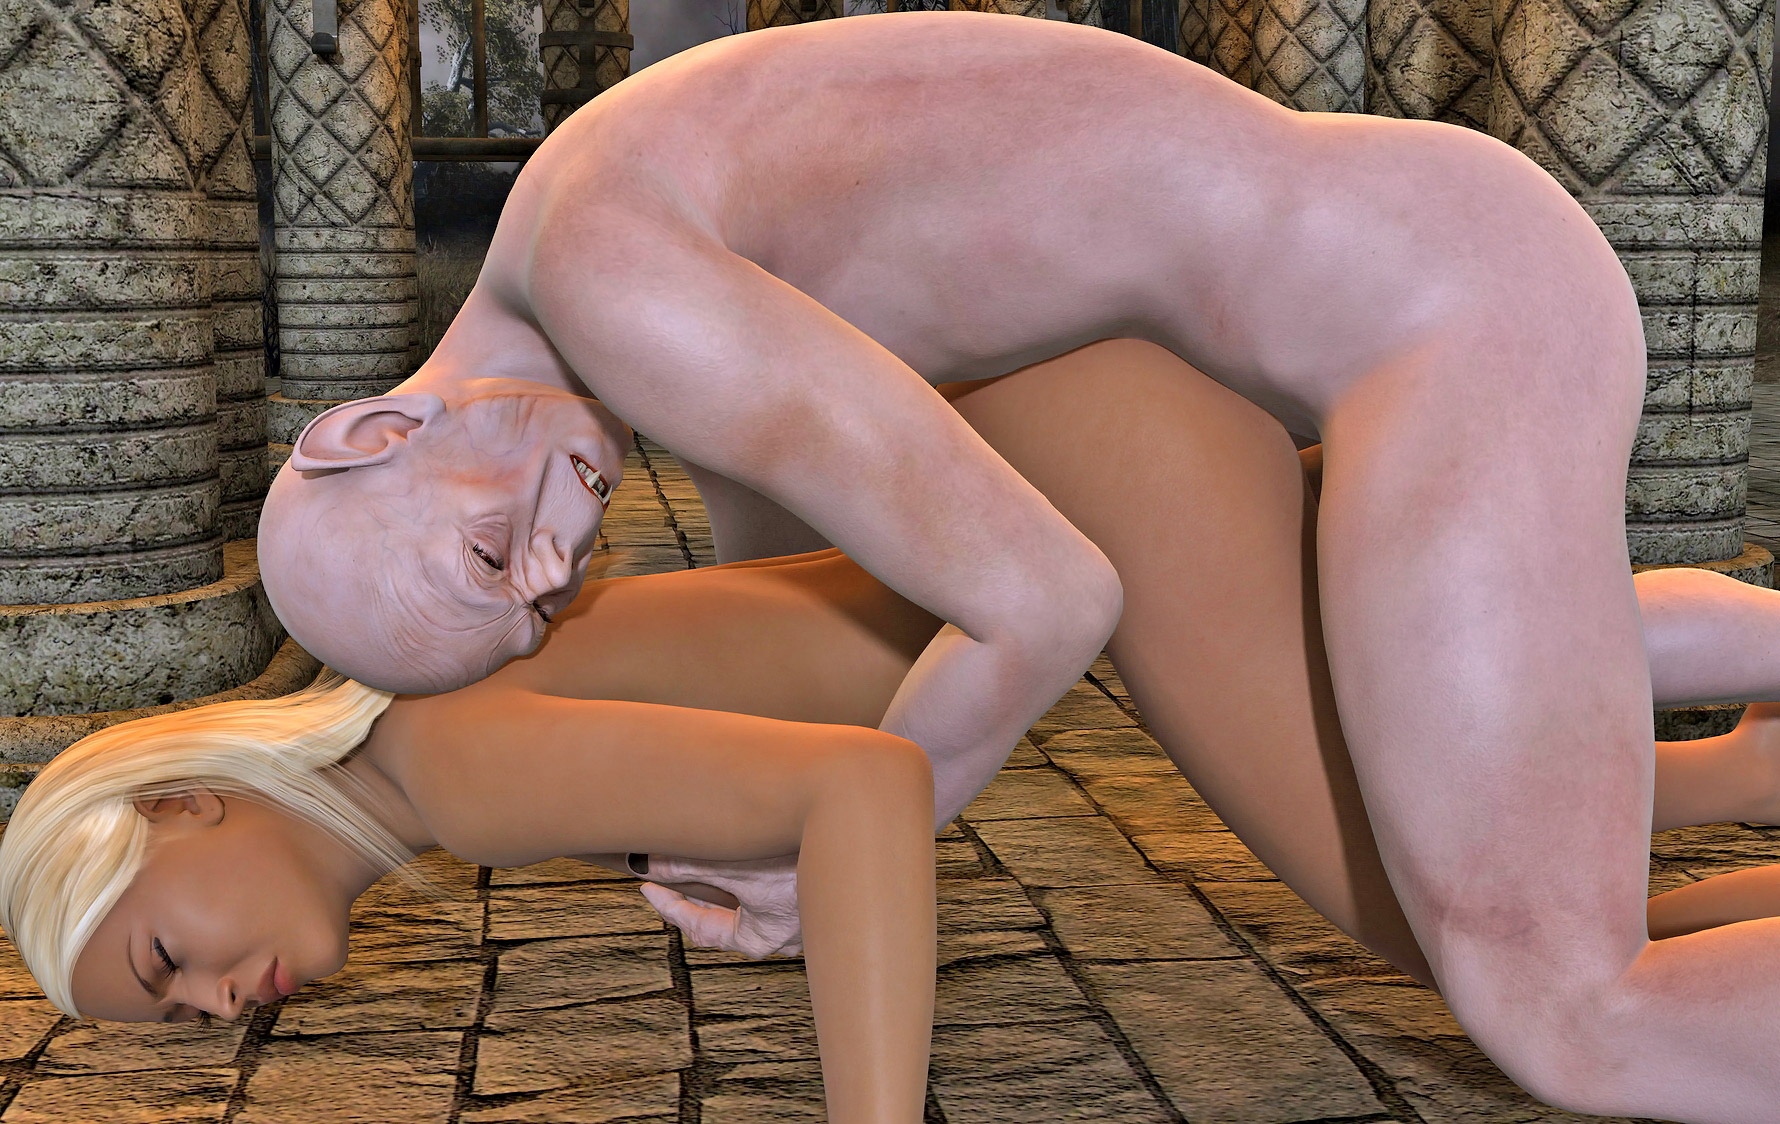 Xxx monster 3d sex 3gp cartoon adult picture